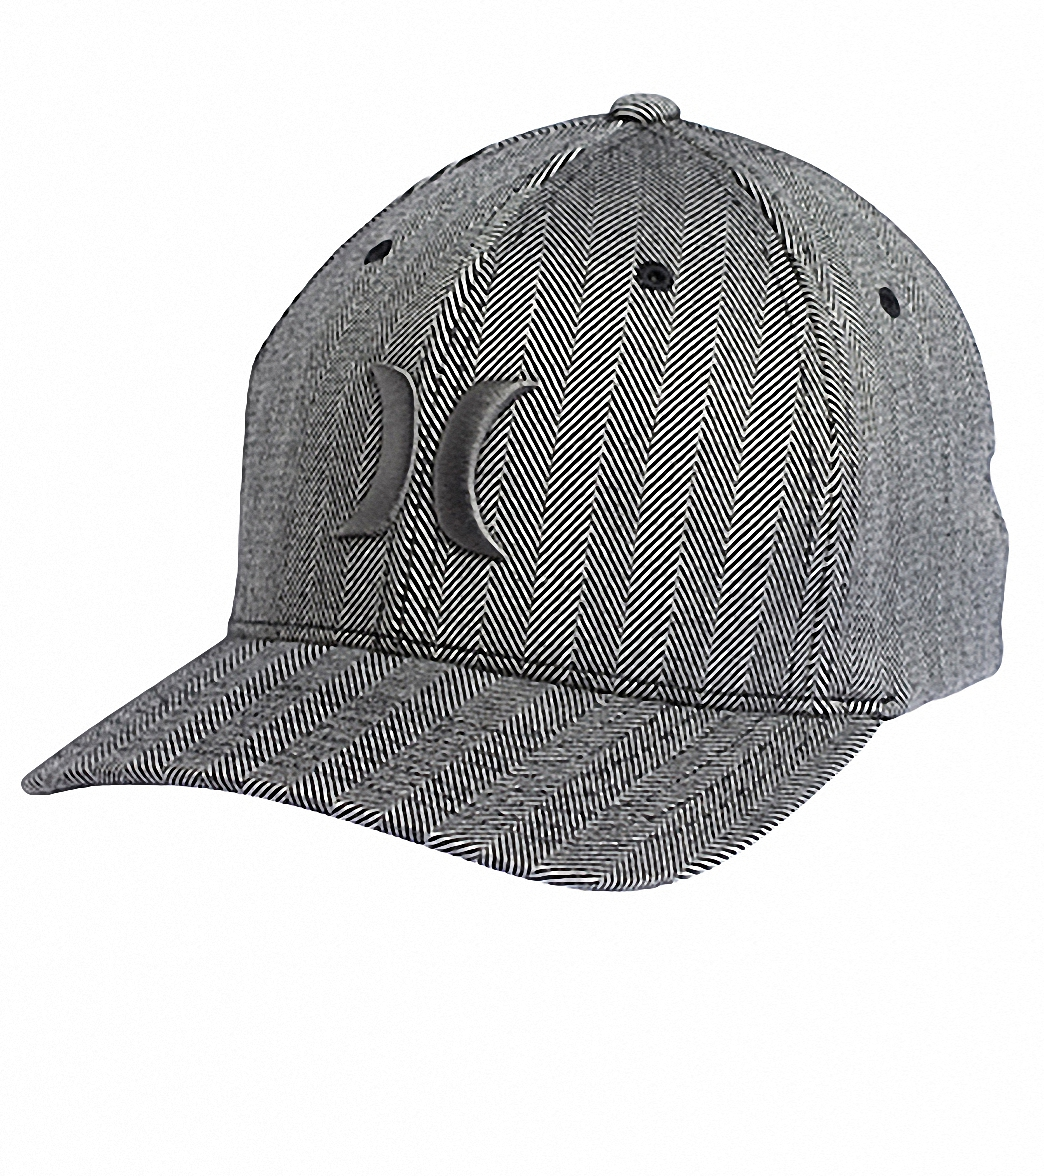 1be280d4 Hurley Guys' One & Only Textures Flexfit Hat